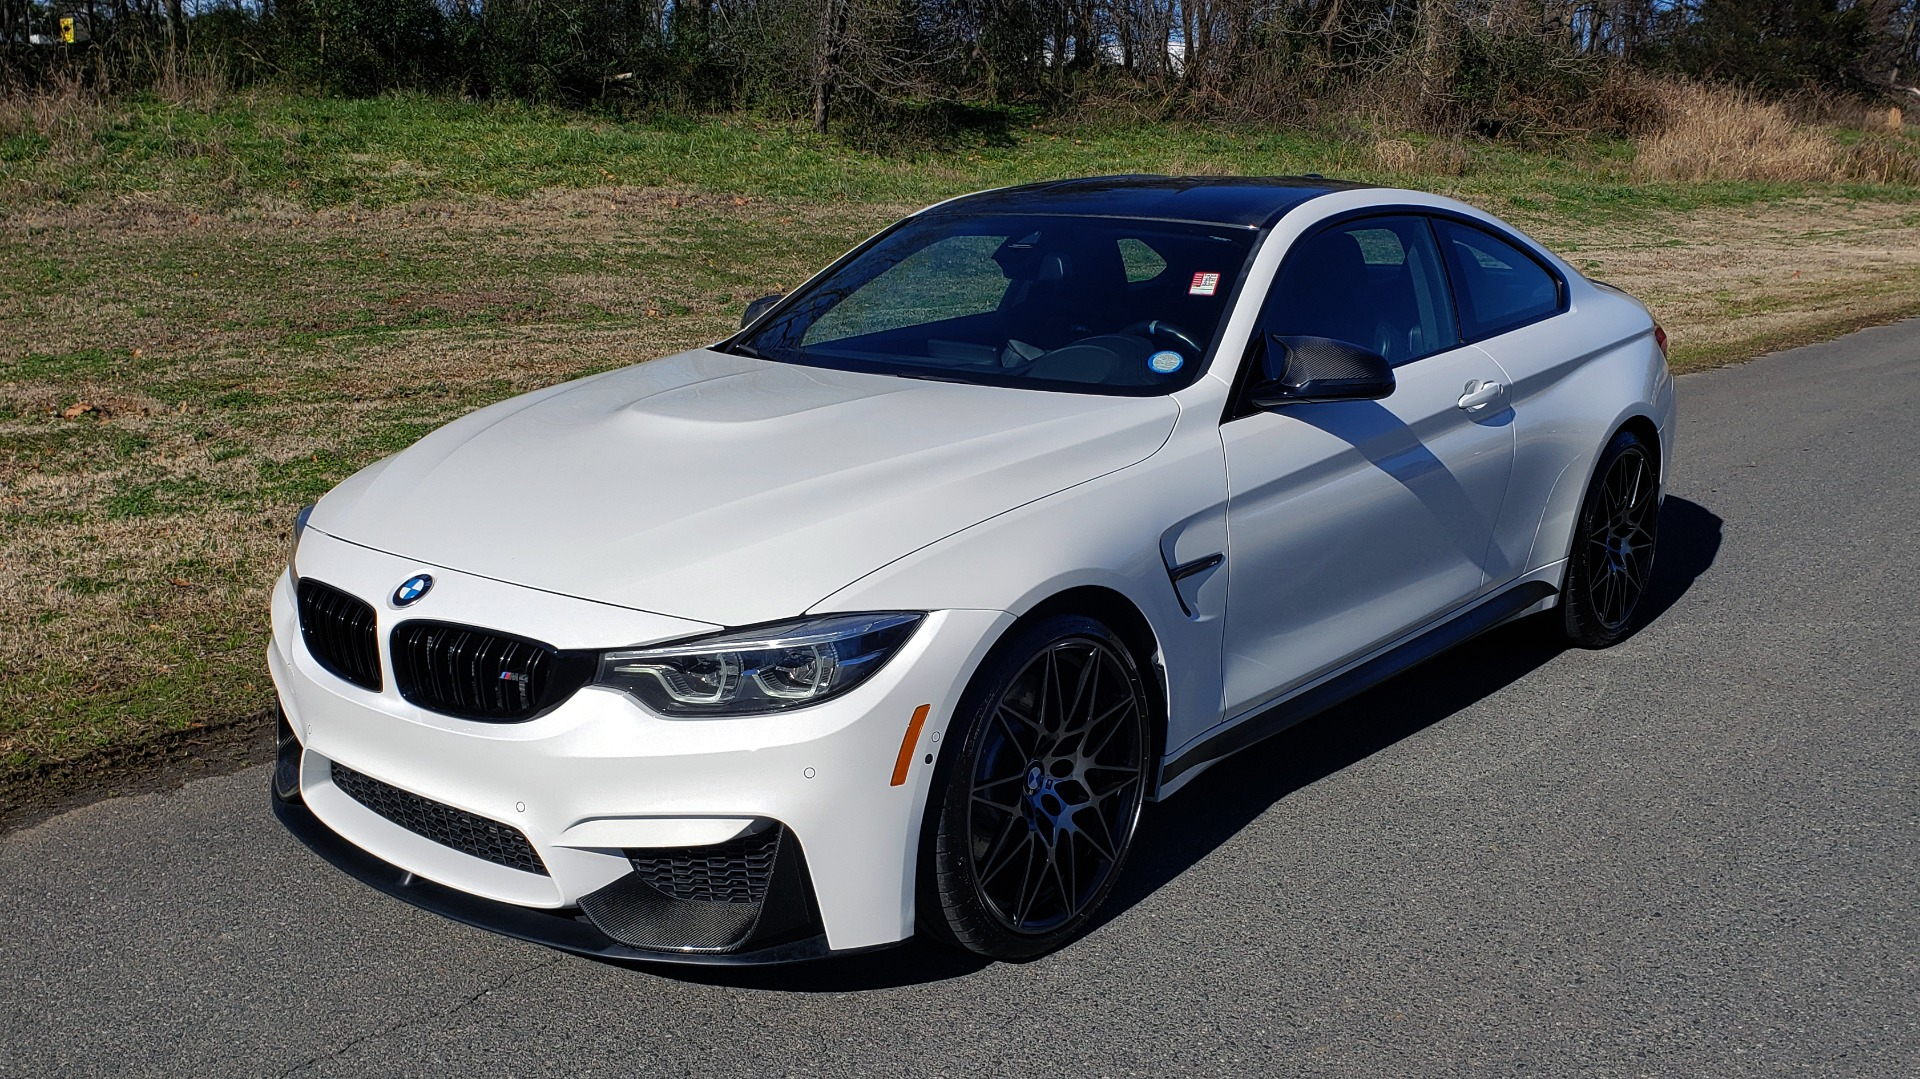 Used 2018 BMW M4 COMP PKG / EXEC / M-DRIVER / PARK CNTRL / ACTIVE BLIND SPOT for sale Sold at Formula Imports in Charlotte NC 28227 2